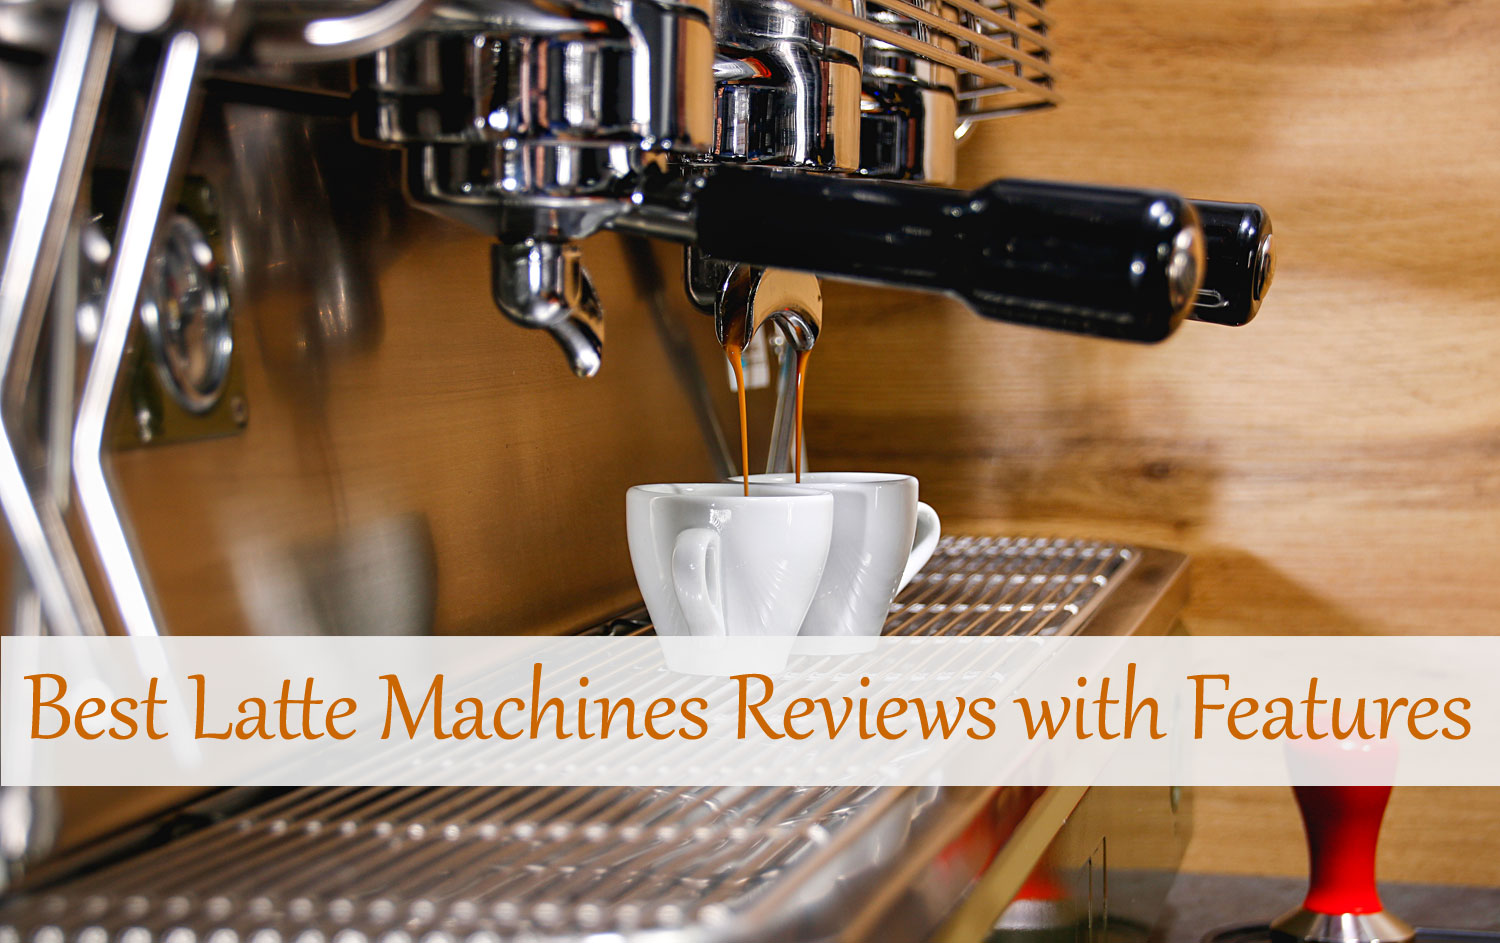 Best Latte Machines Reviews